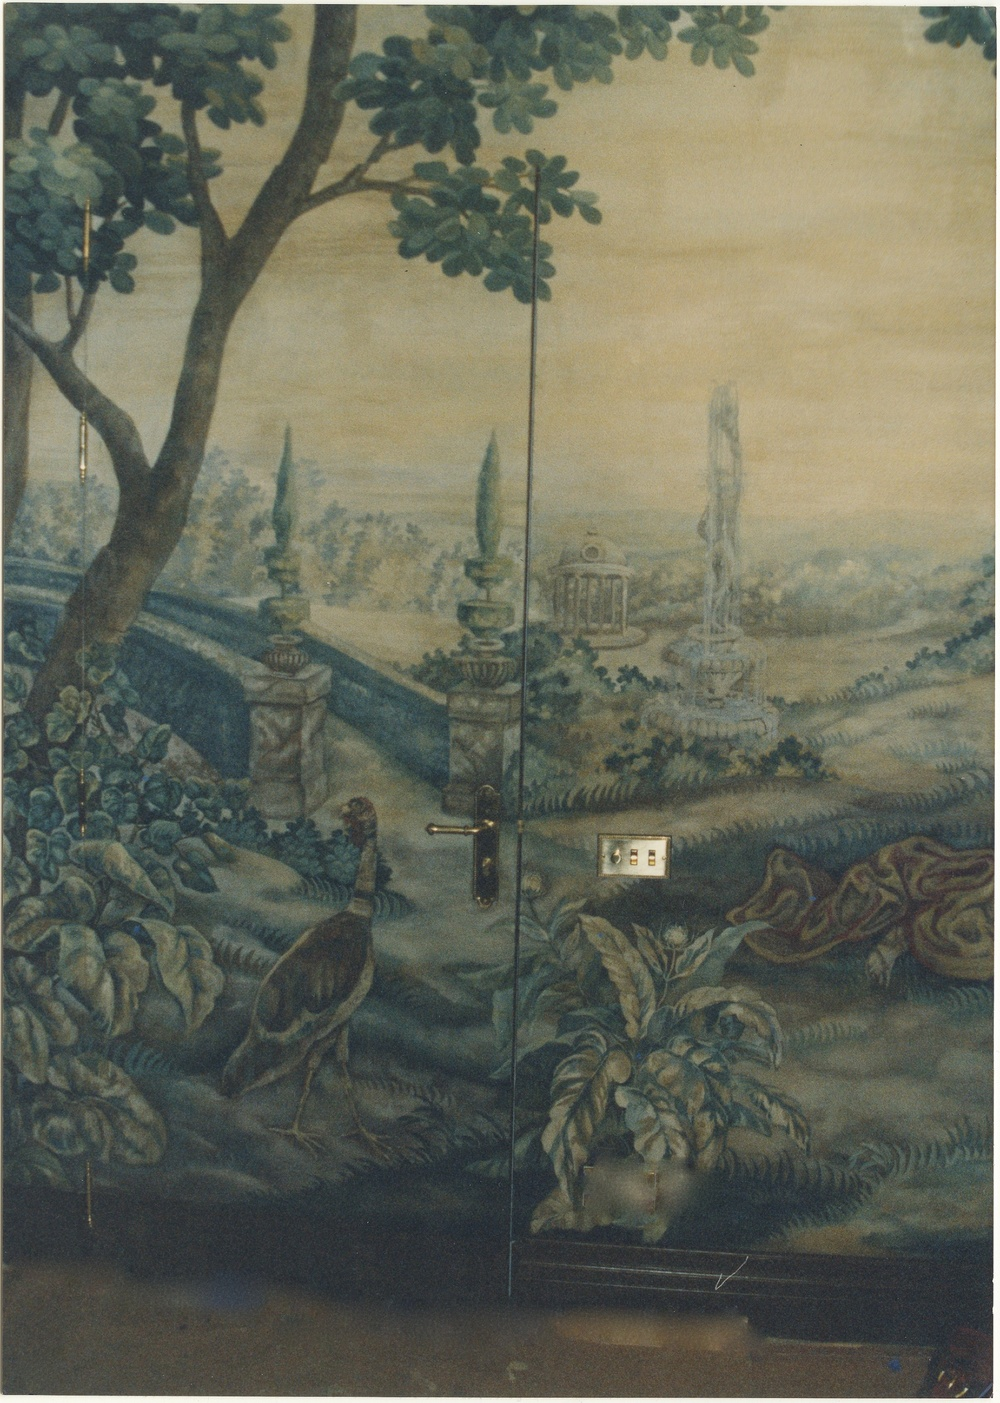 Madrid Tapestry 5.jpg